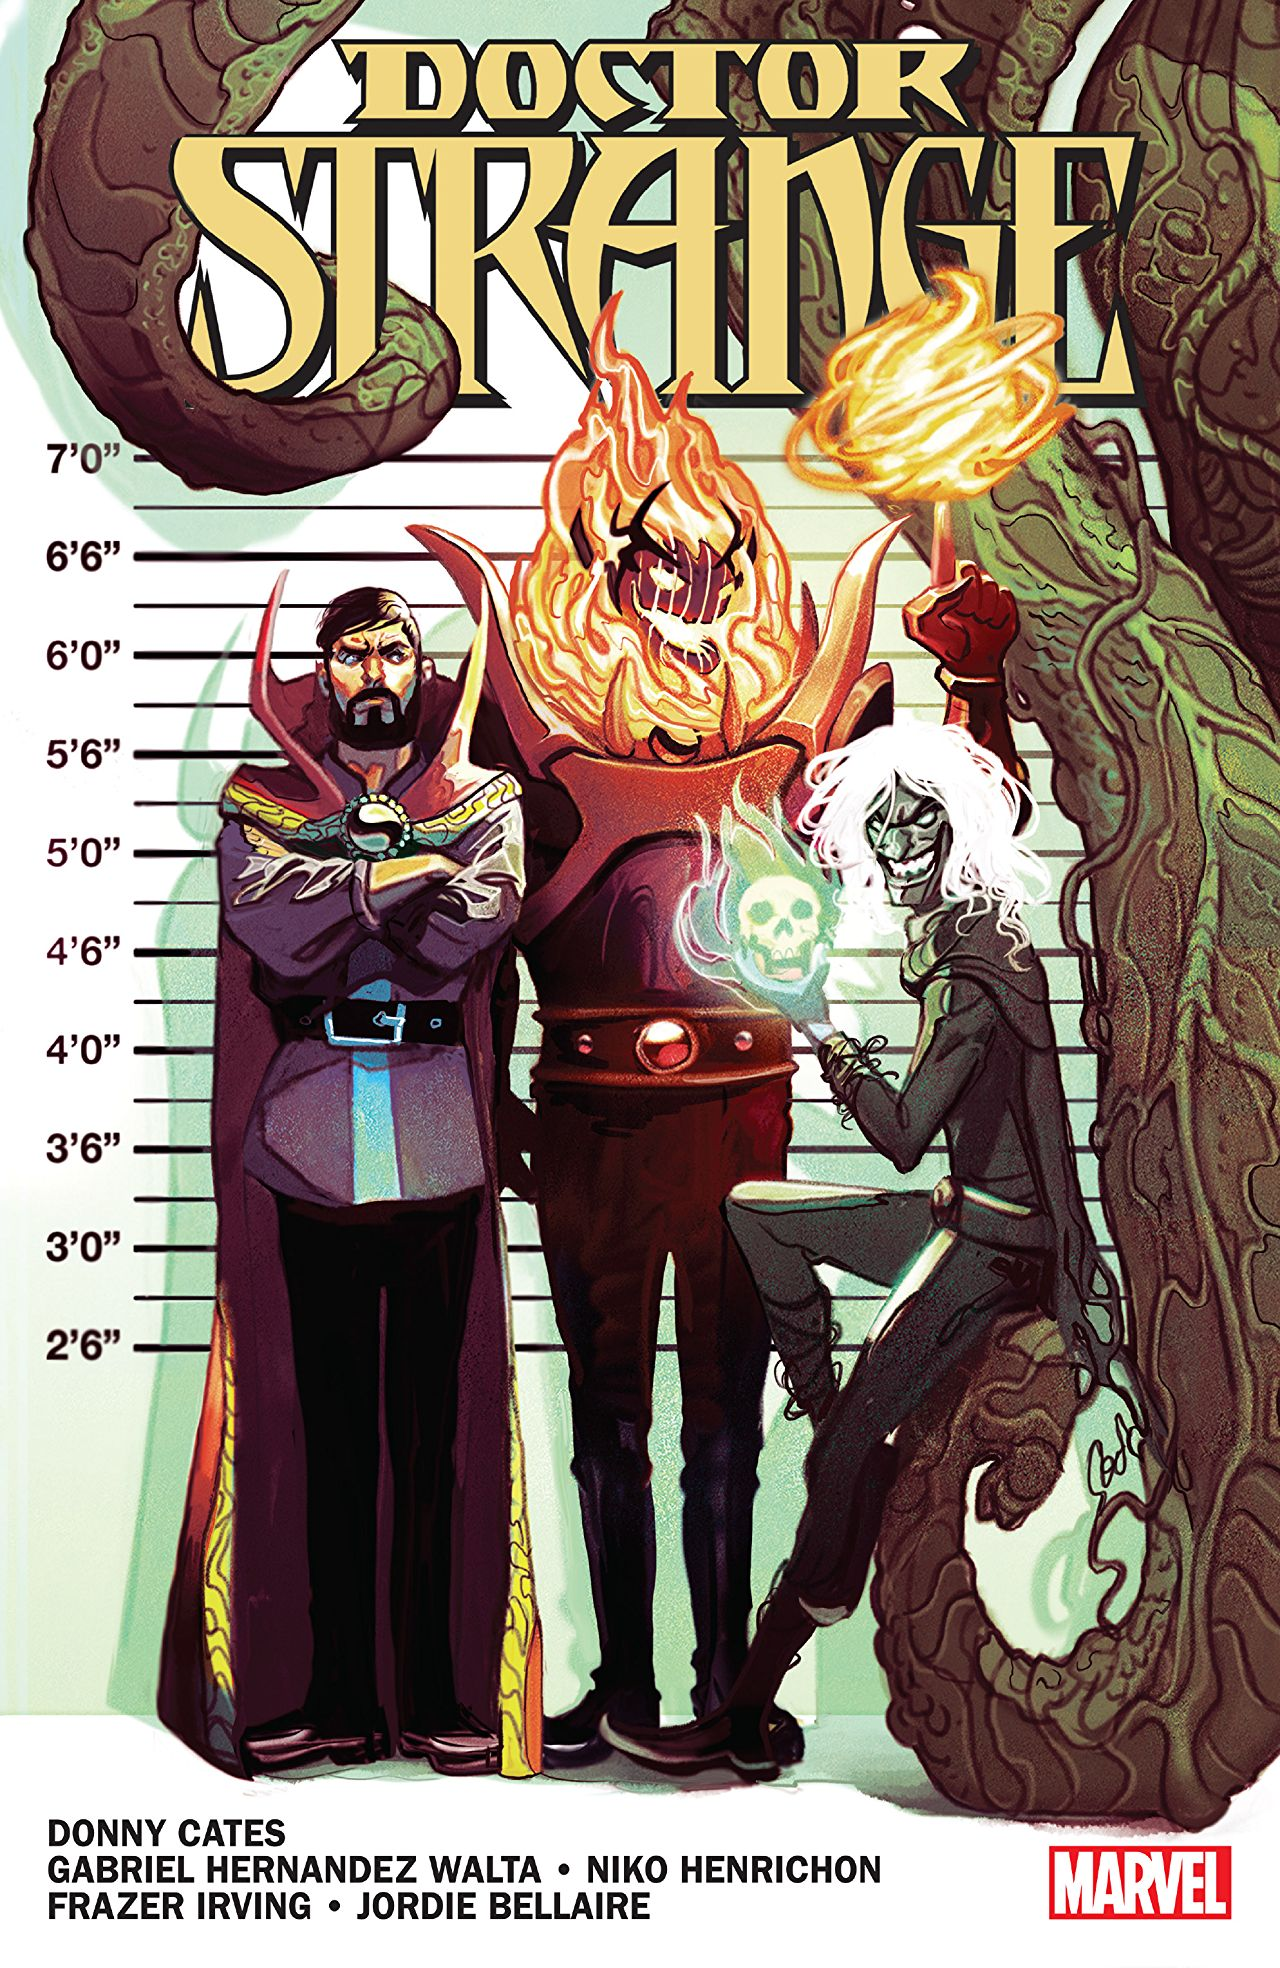 Doctor Strange By Donny Cates (Hardcover)